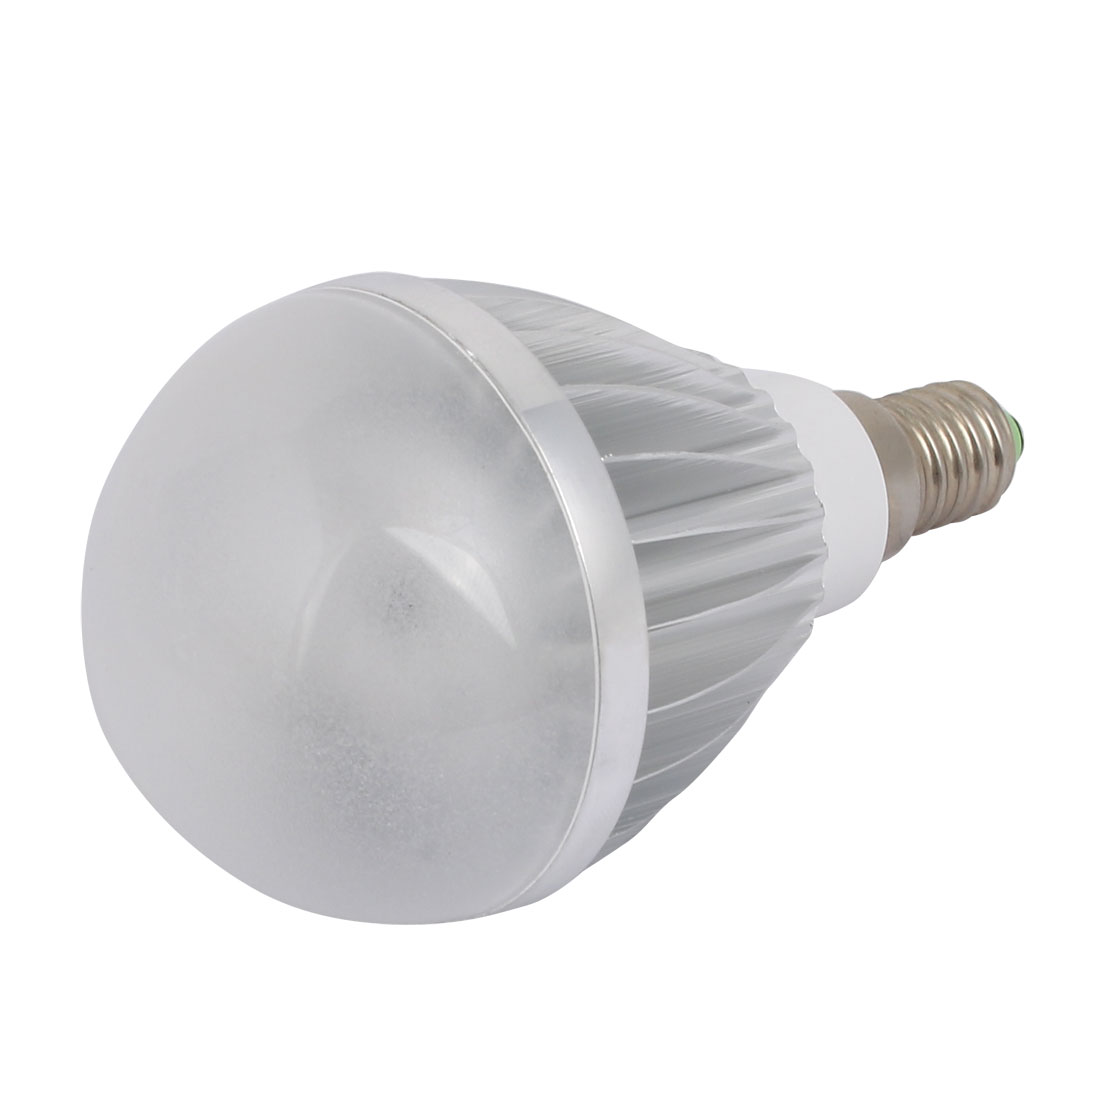 5W Slivery Aluminum Ball - Bulb Lamp Housing E14 Screw Base with Frosted Cover